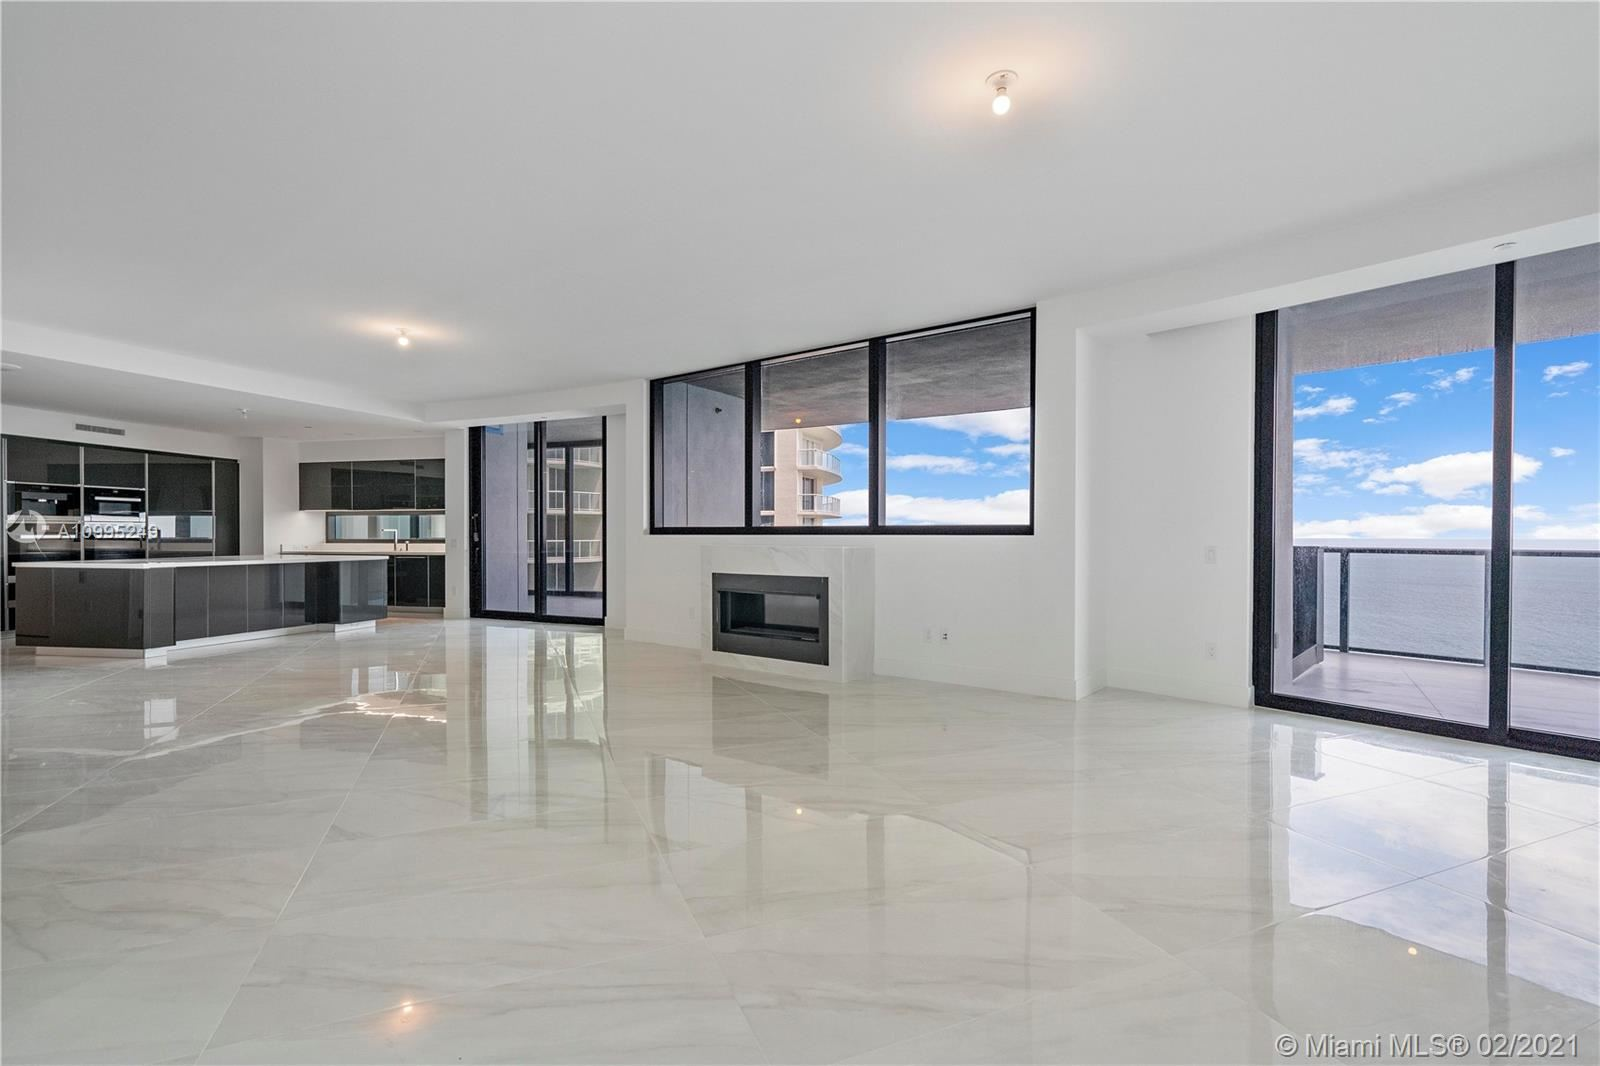 18555 Collins Ave #2605, Sunny Isles, FL 33160 - #: A10995249